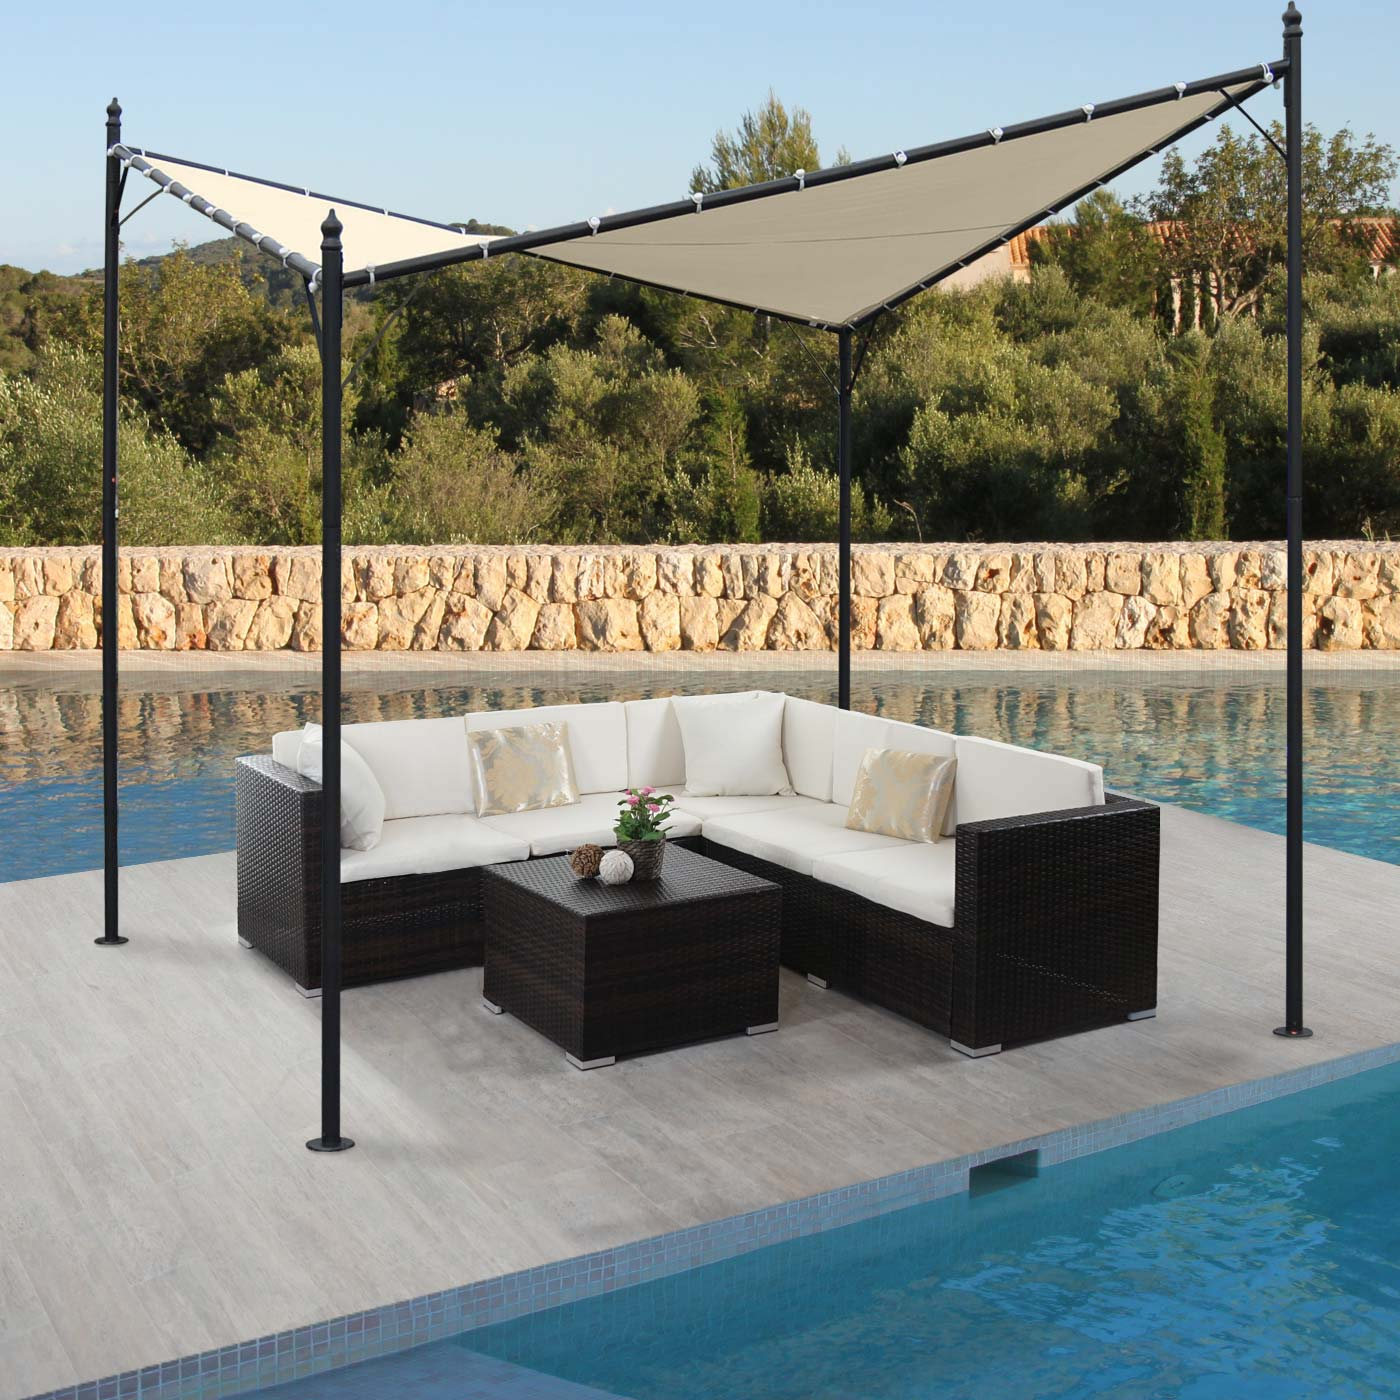 pergola girona garten pavillon sonnensegel stabiles 5cm. Black Bedroom Furniture Sets. Home Design Ideas